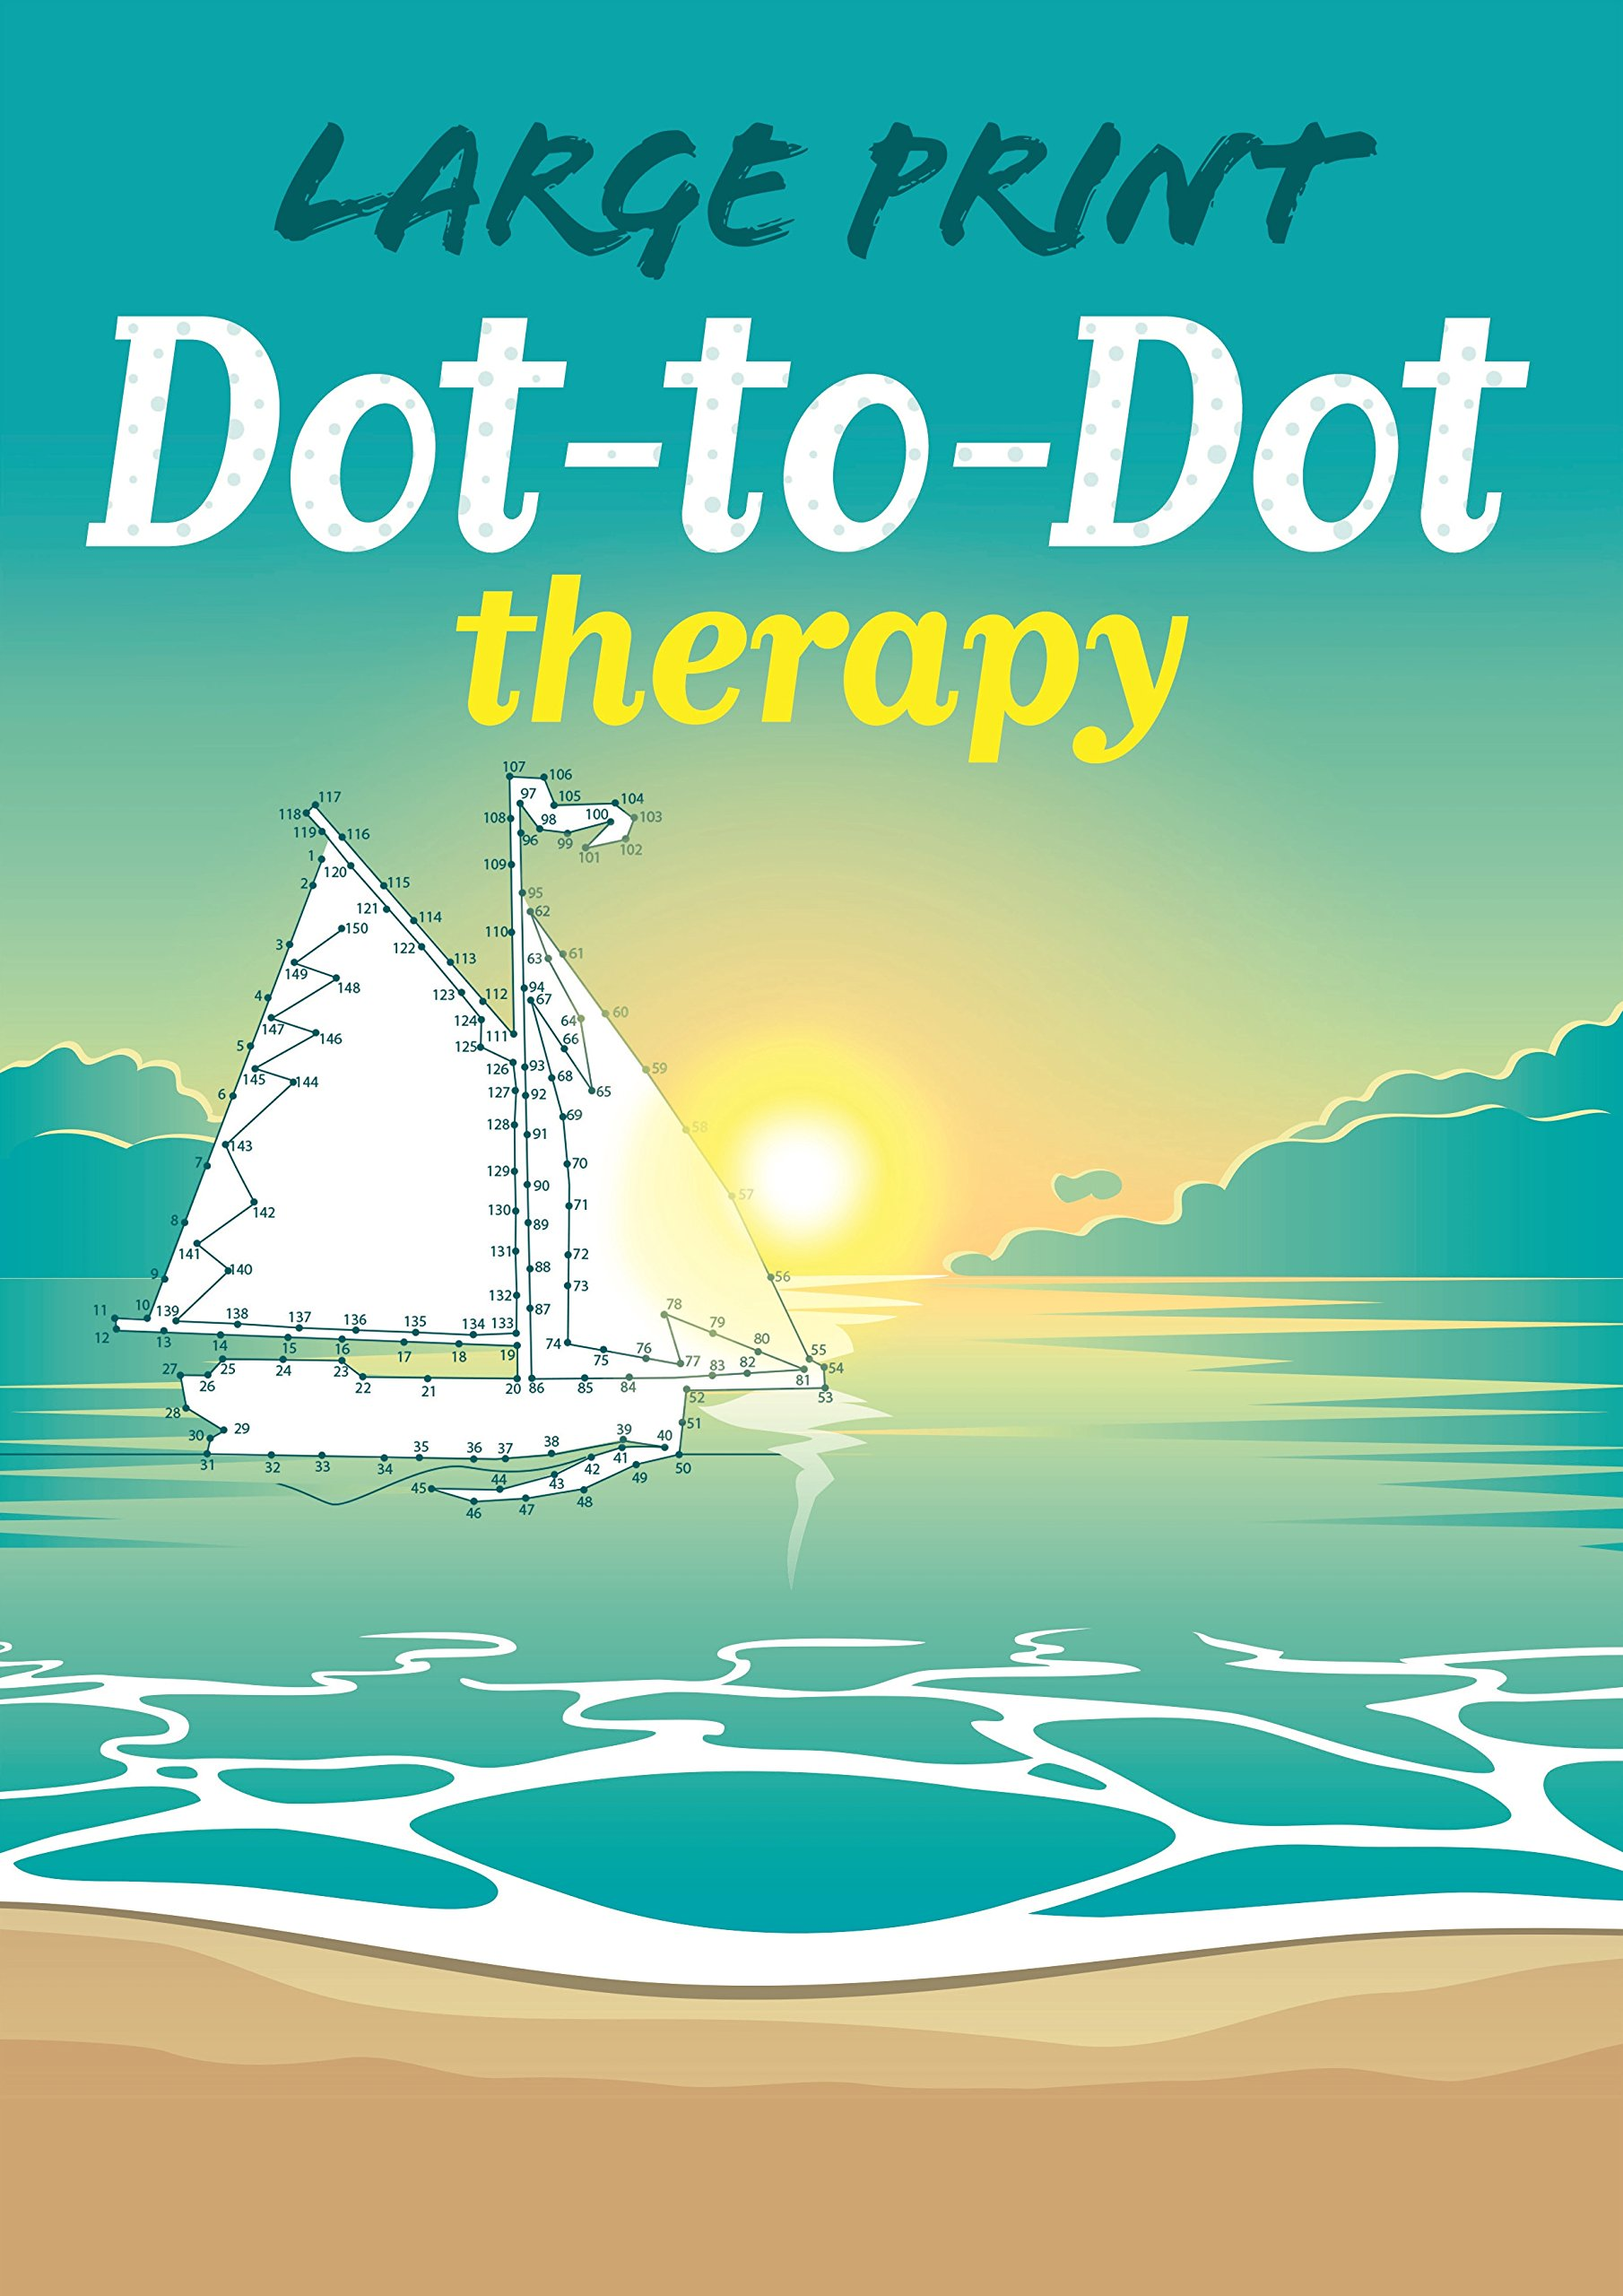 Amazon.com: Large Print Dot-to-Dot Therapy (9781784284107): Adam ...